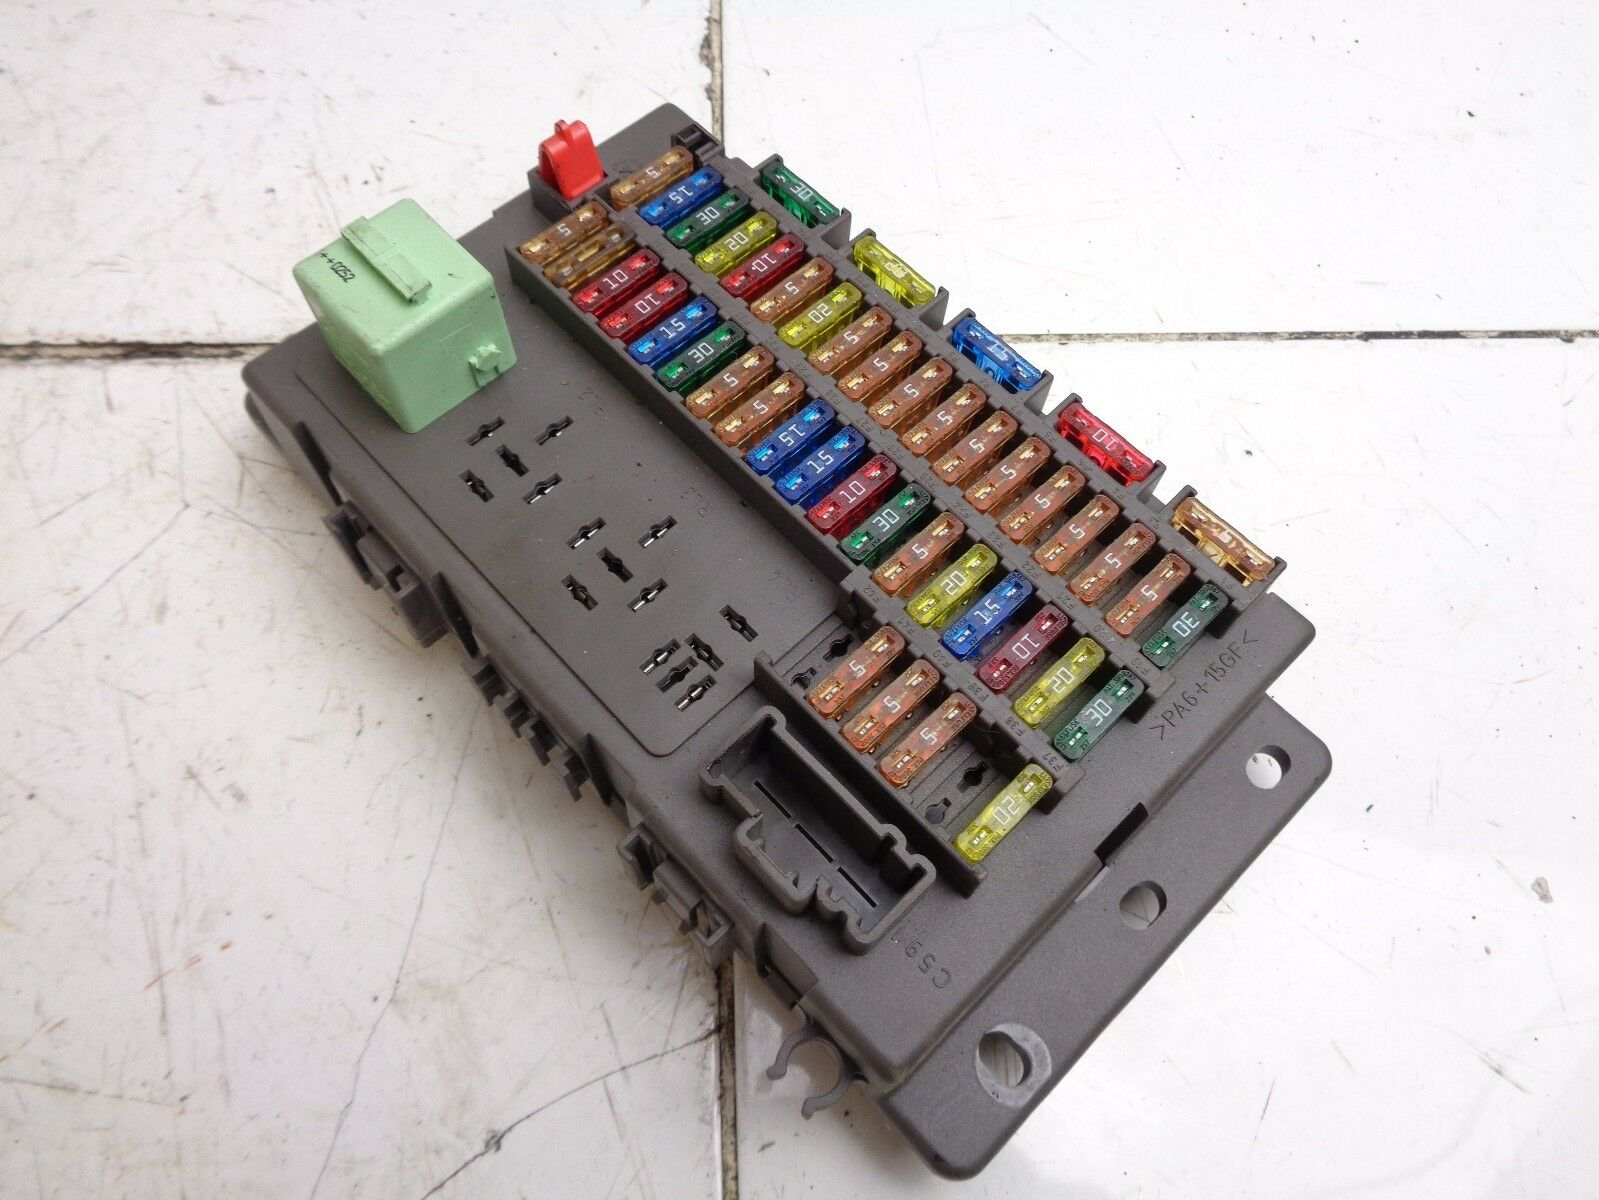 Mini Cooper S Fuse Box Genuine 2001 2006 Bmw R50 R52 R53 One 949 1 Of 5only Available See More